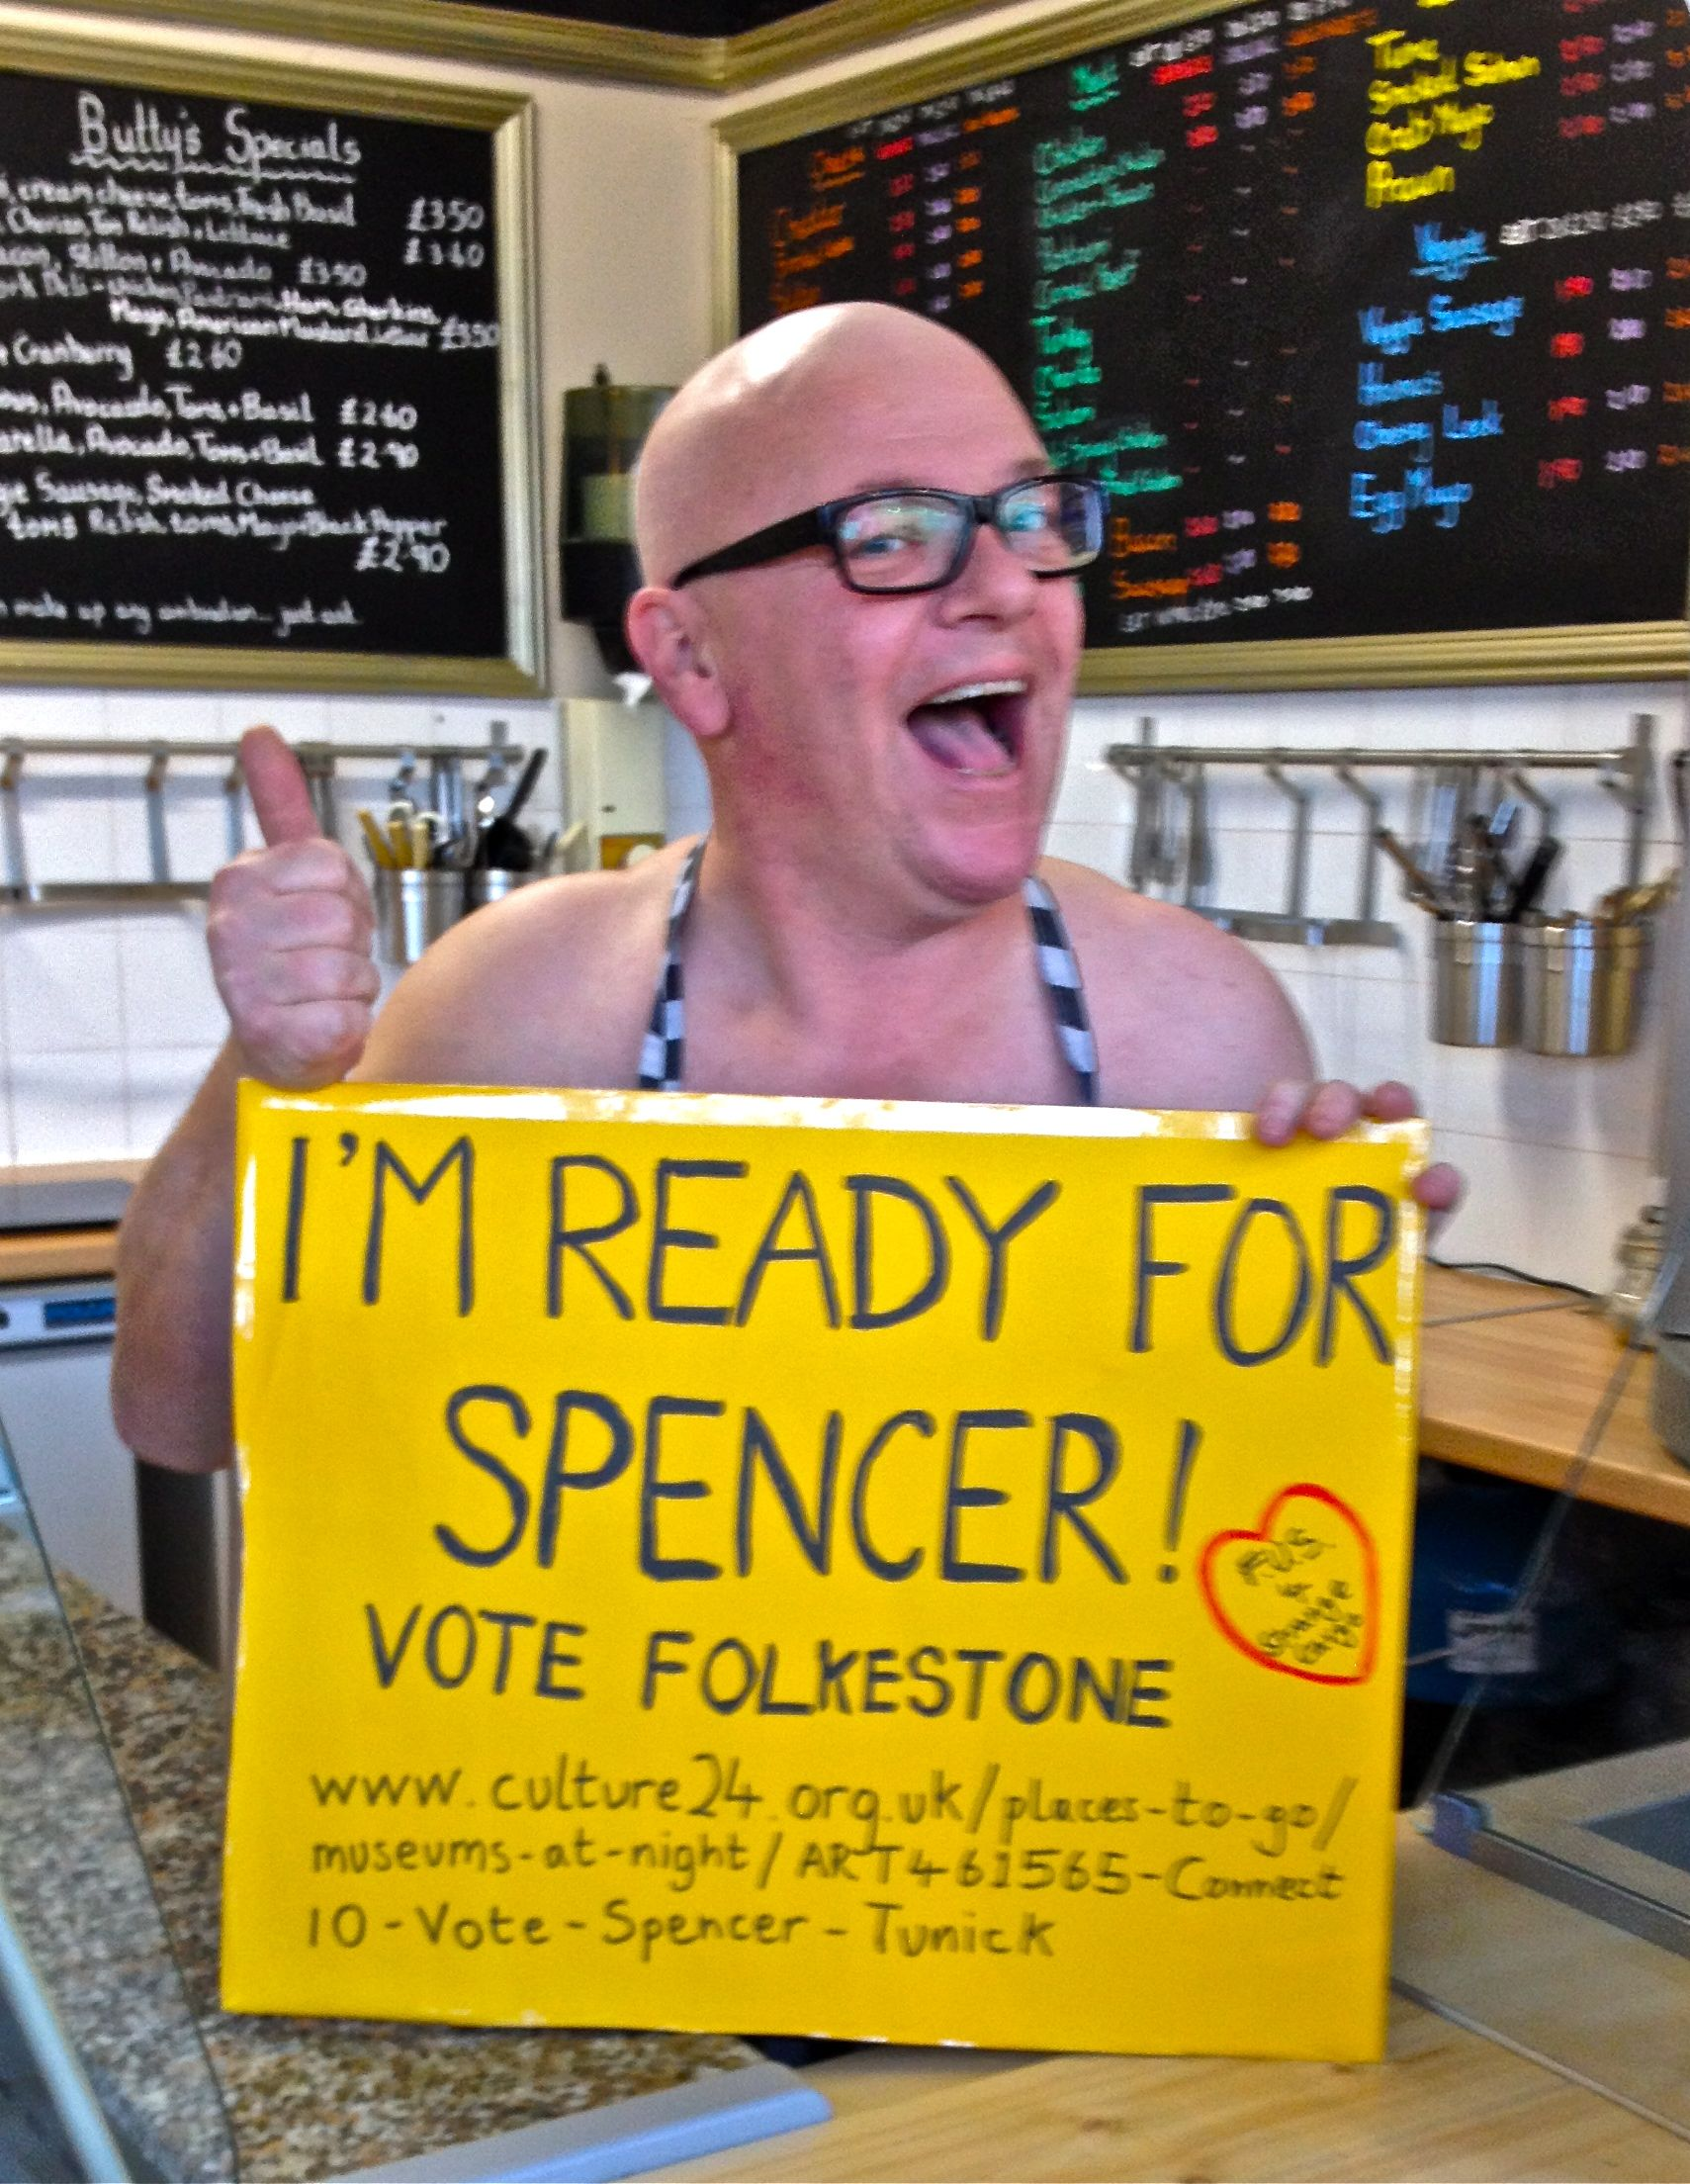 Buttys of Folkestone are 'Ready for Spencer'  #votefolkestone  http://www.culture24.org.uk//places-to-go/museums-at-night/ART461565-Connect10-Vote-Spencer-Tunick